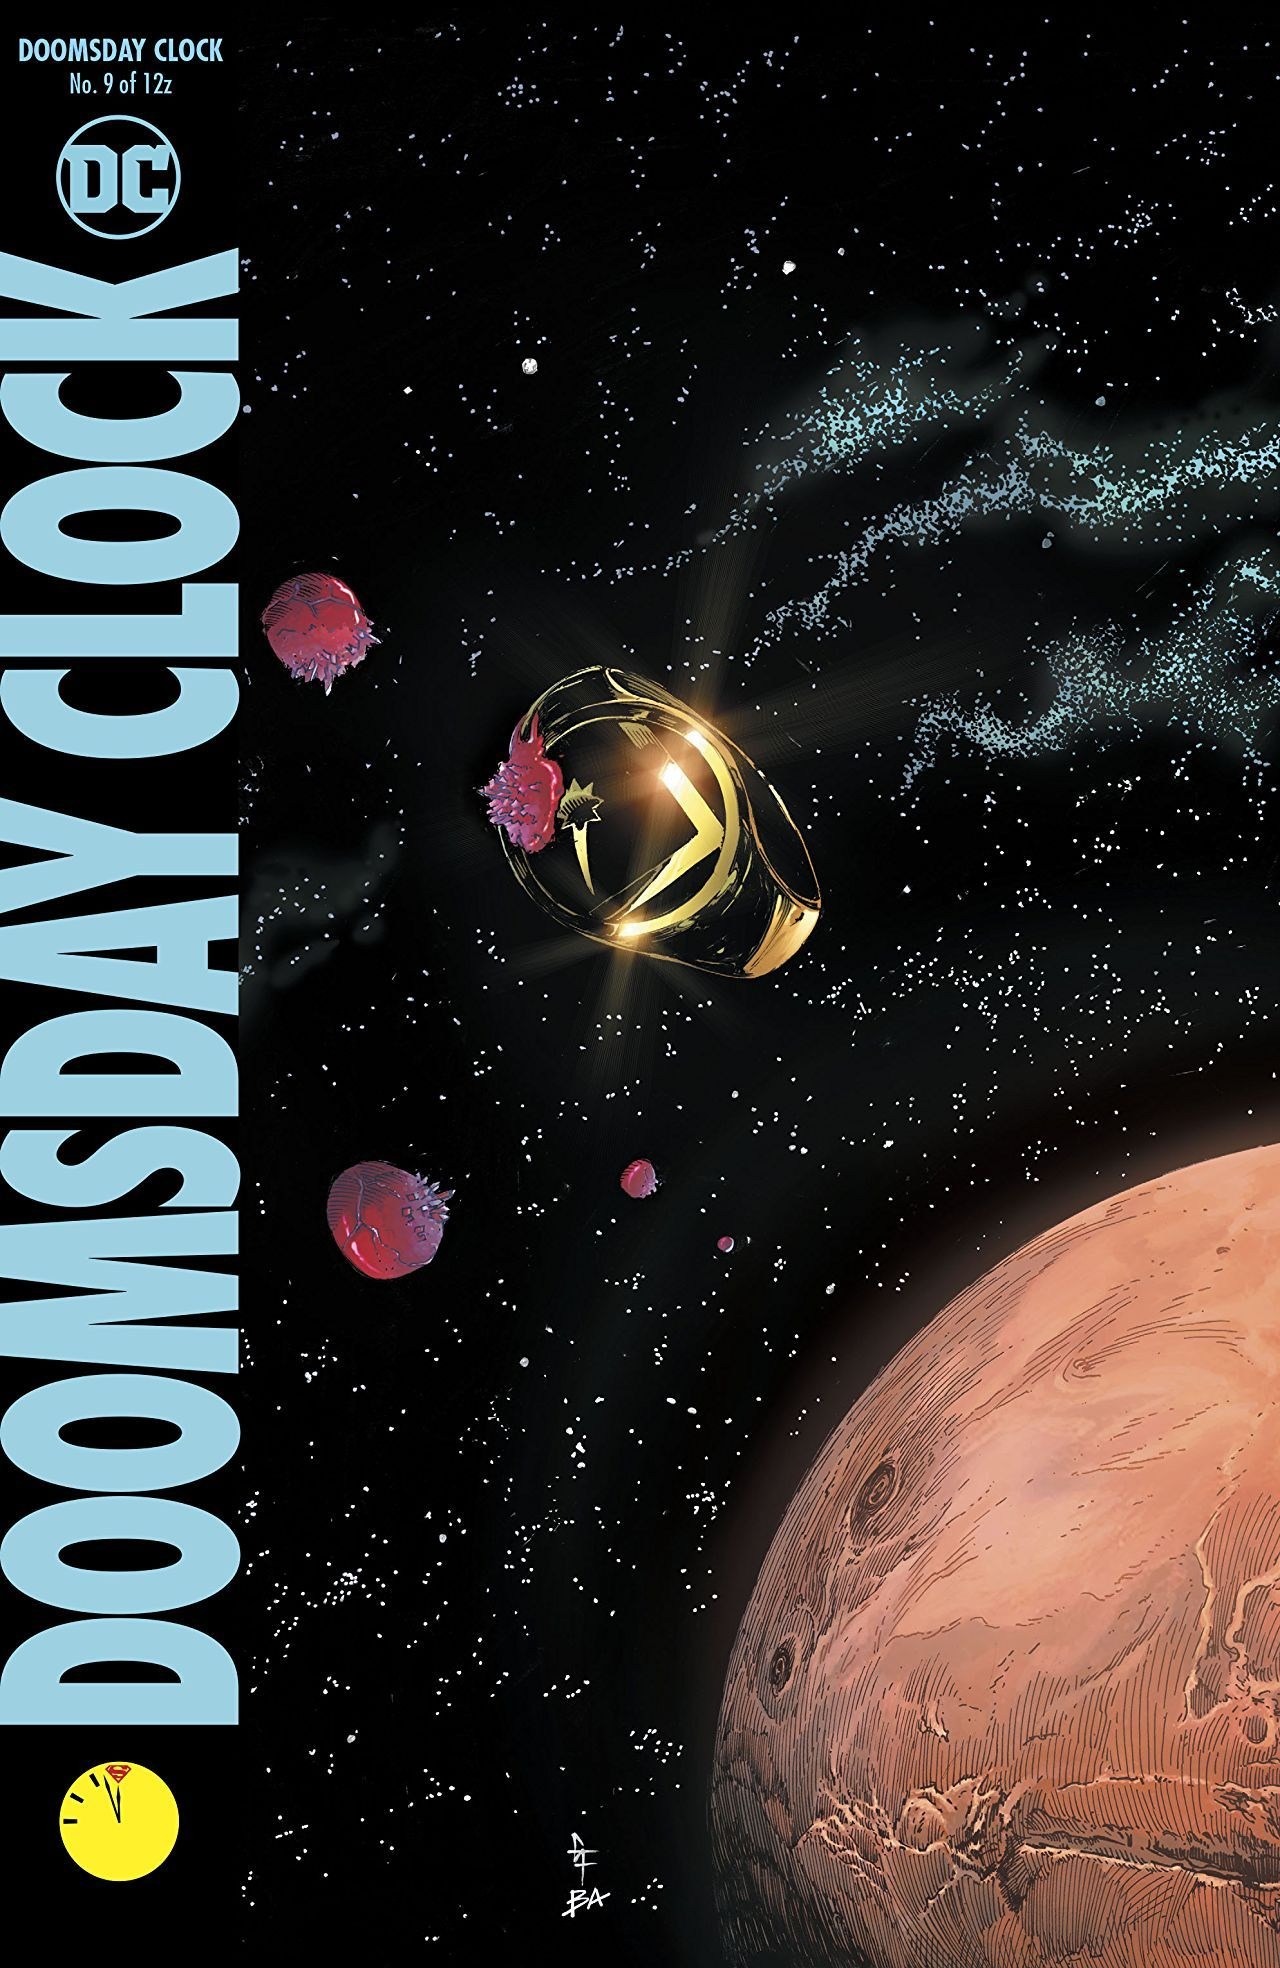 REVIEW: Doomsday Clock #9 is Comic Book Bliss